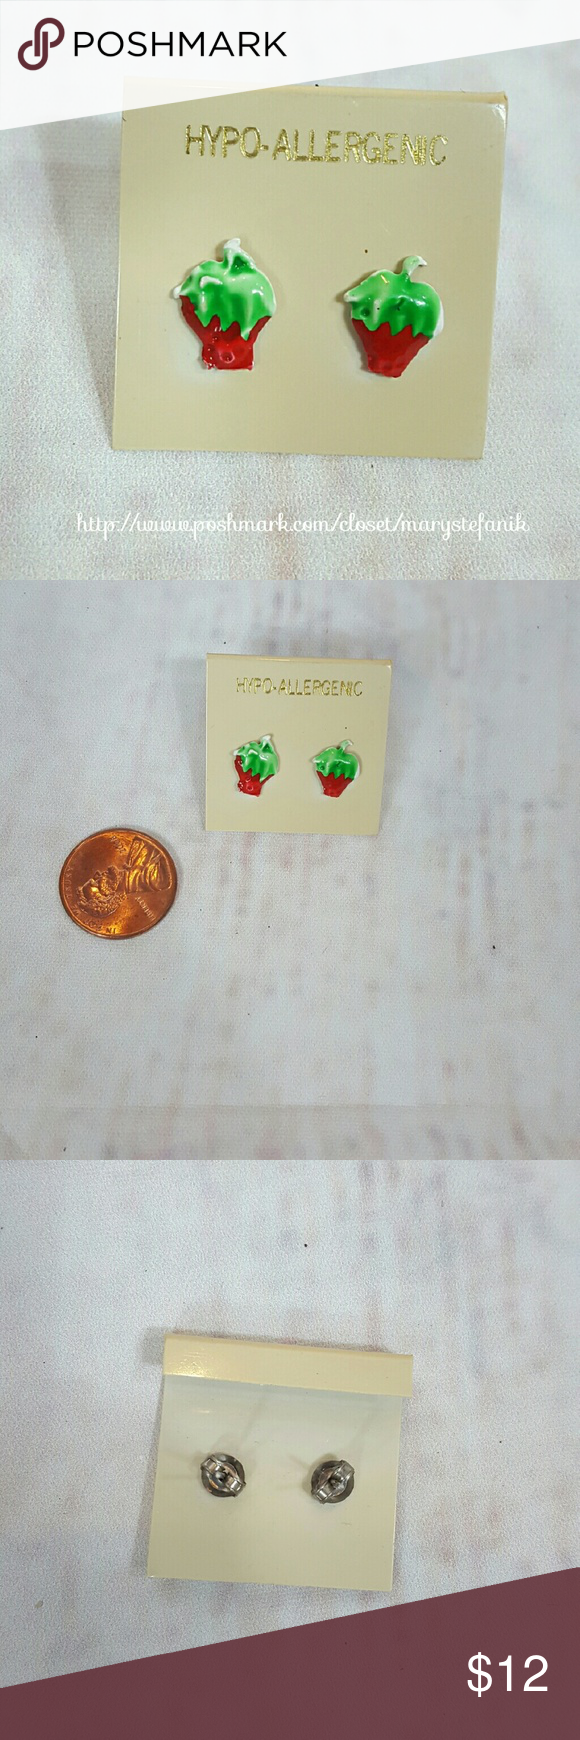 pin strawberry earrings jewelry skinner stud image bill of